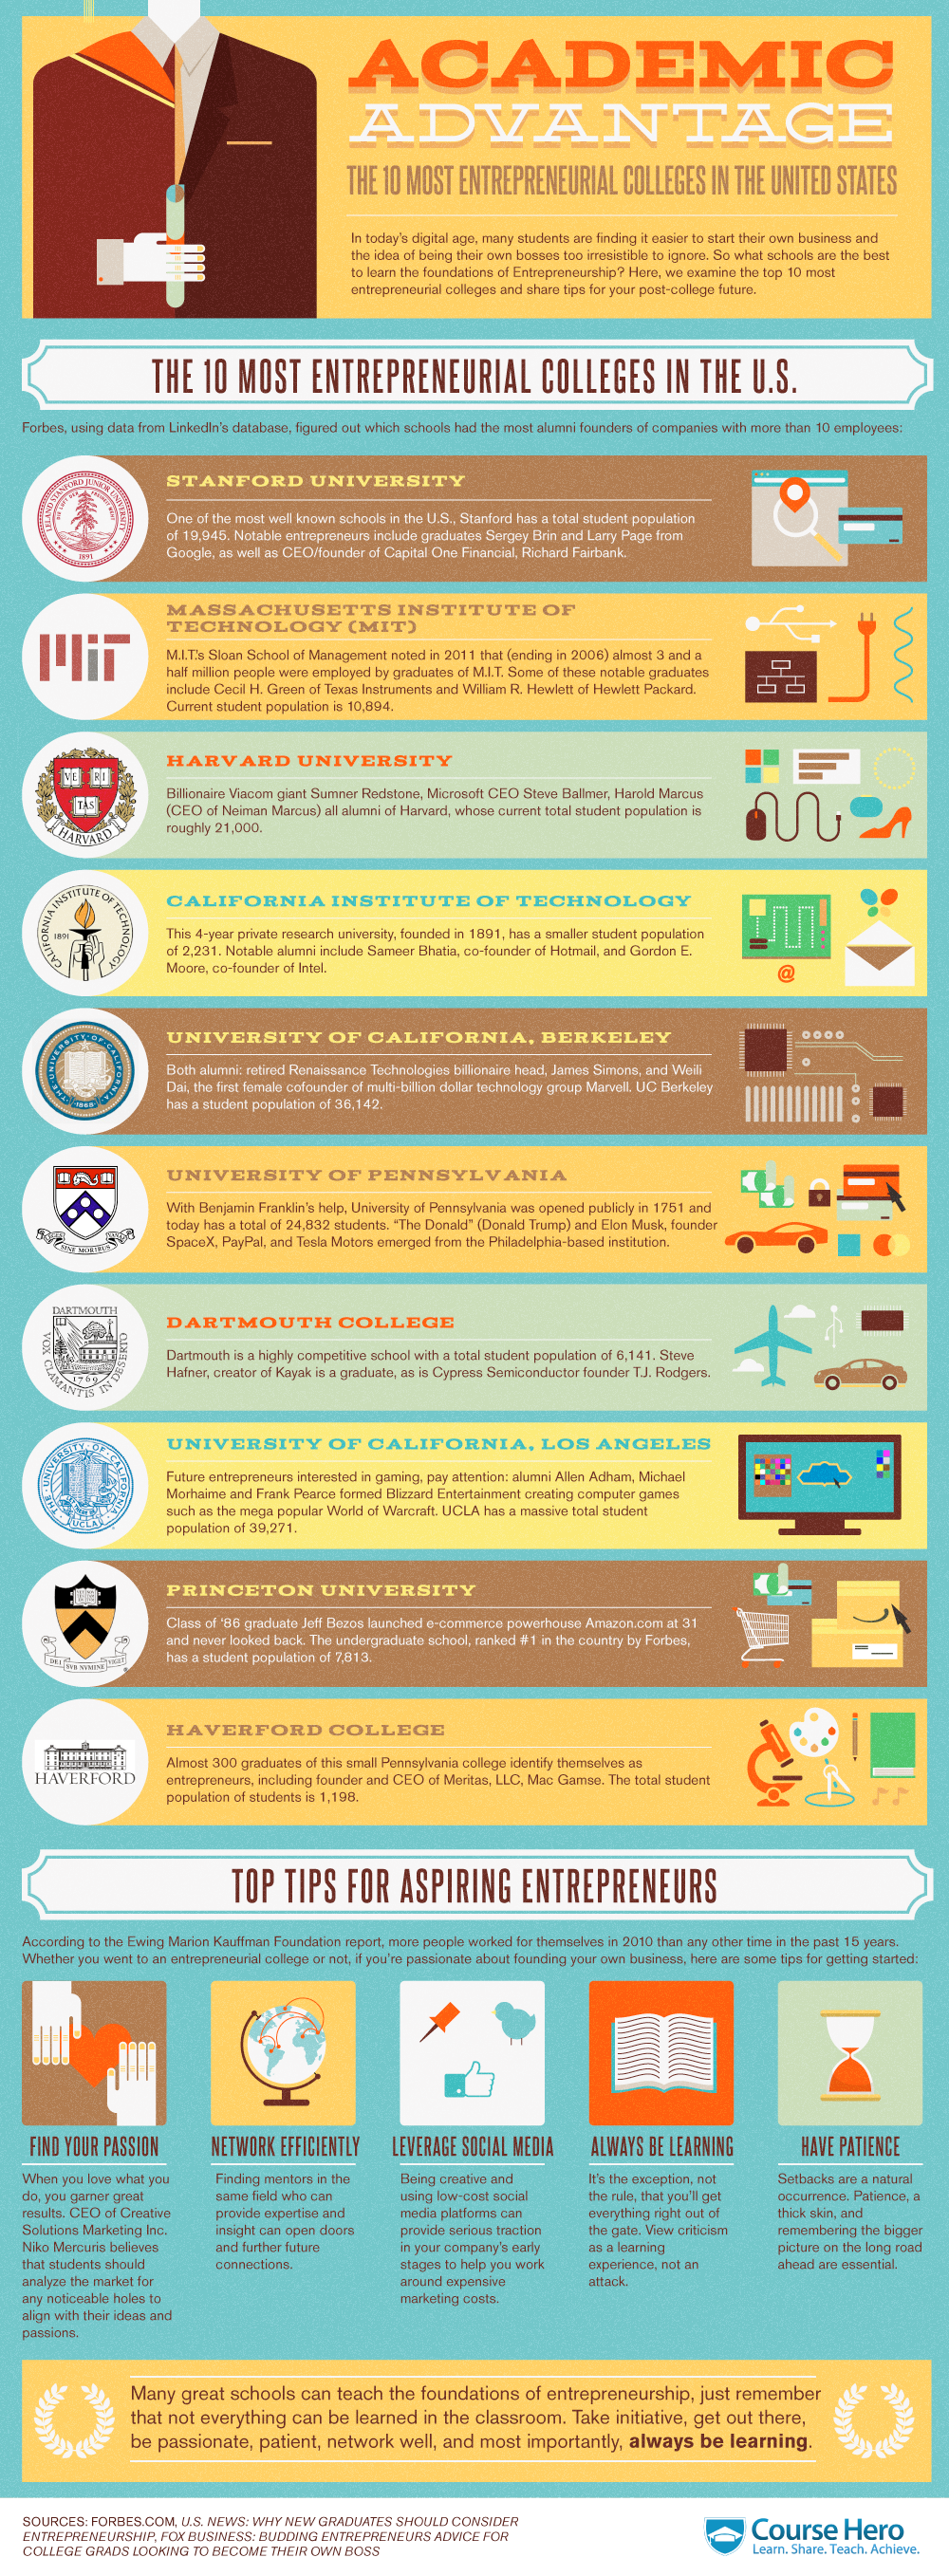 Entrepreneurial Colleges